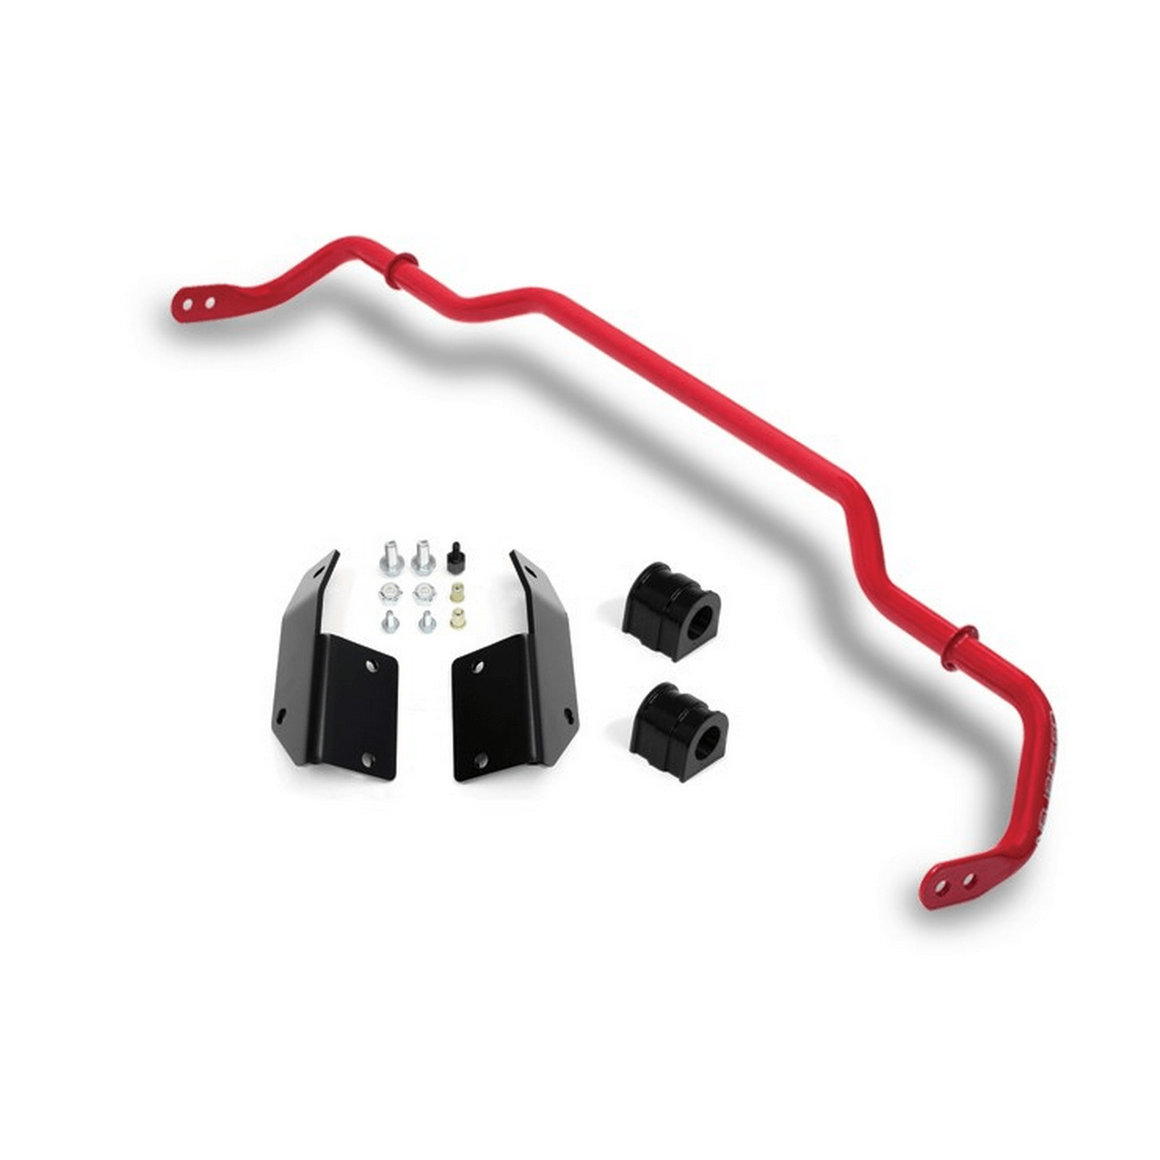 Neuspeed Race Series 28mm Rear Anti-Sway Bar VW Mk5/Mk6 - Redline Motorworks